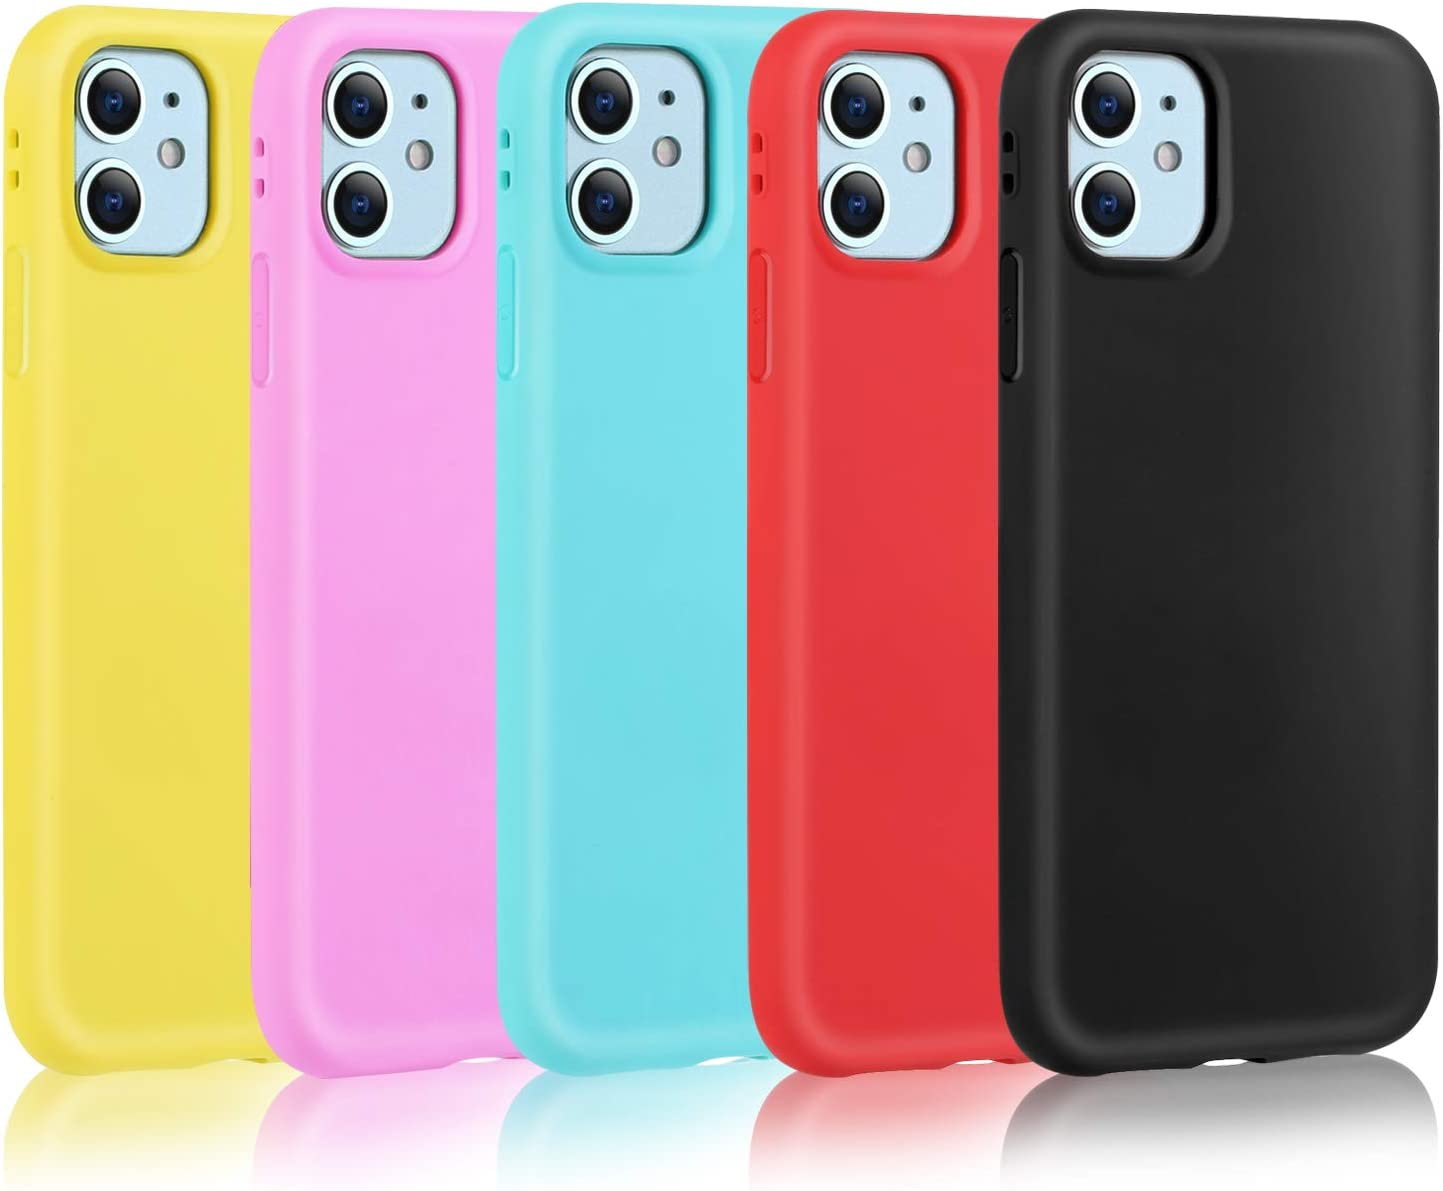 Pofesun Silicone iPhone 11 Case, 5 Pack Ultra Slim Fit Soft Silicone Protective Gel Case Shock-Absorption Anti-Scratch Cover Cases Compatible for iPhone 11 6.1 inch (2019)-Black,Rose,Yellow,Rose,Green